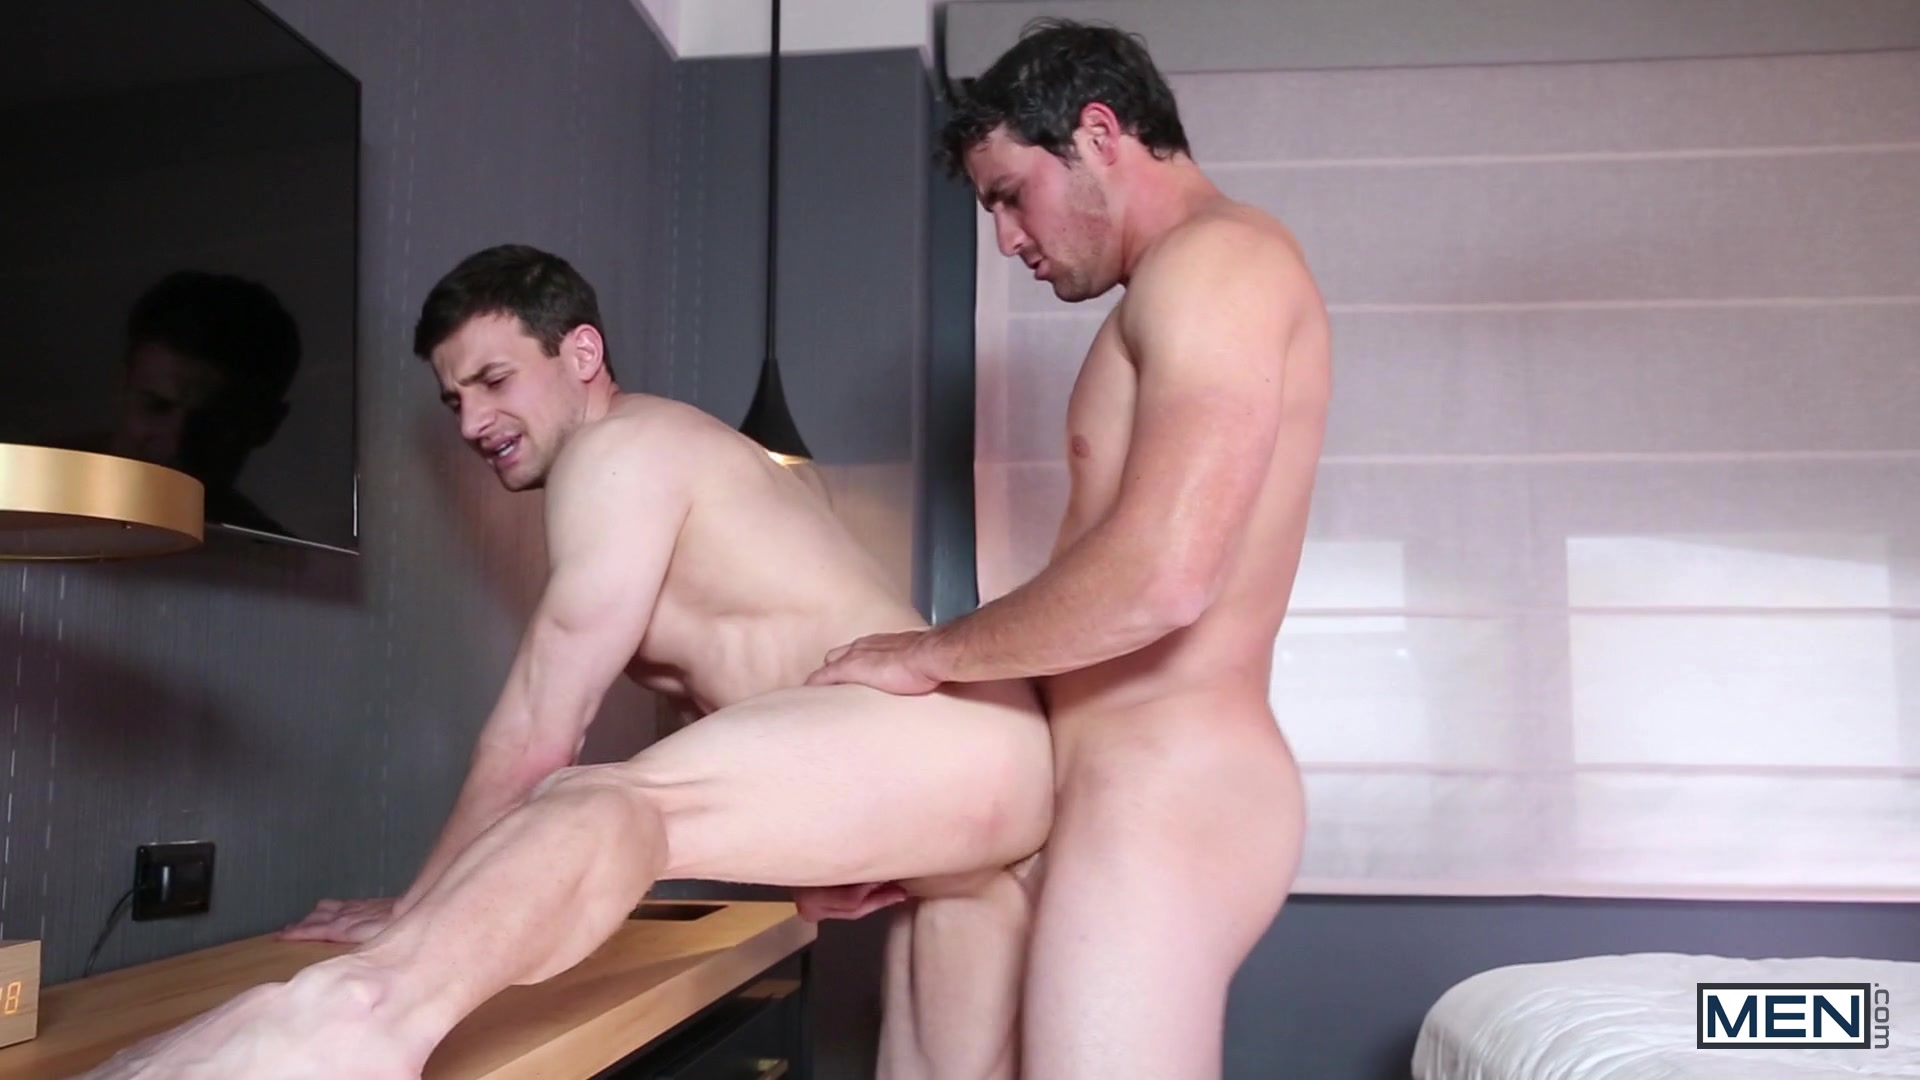 from Cade free gay porn married men